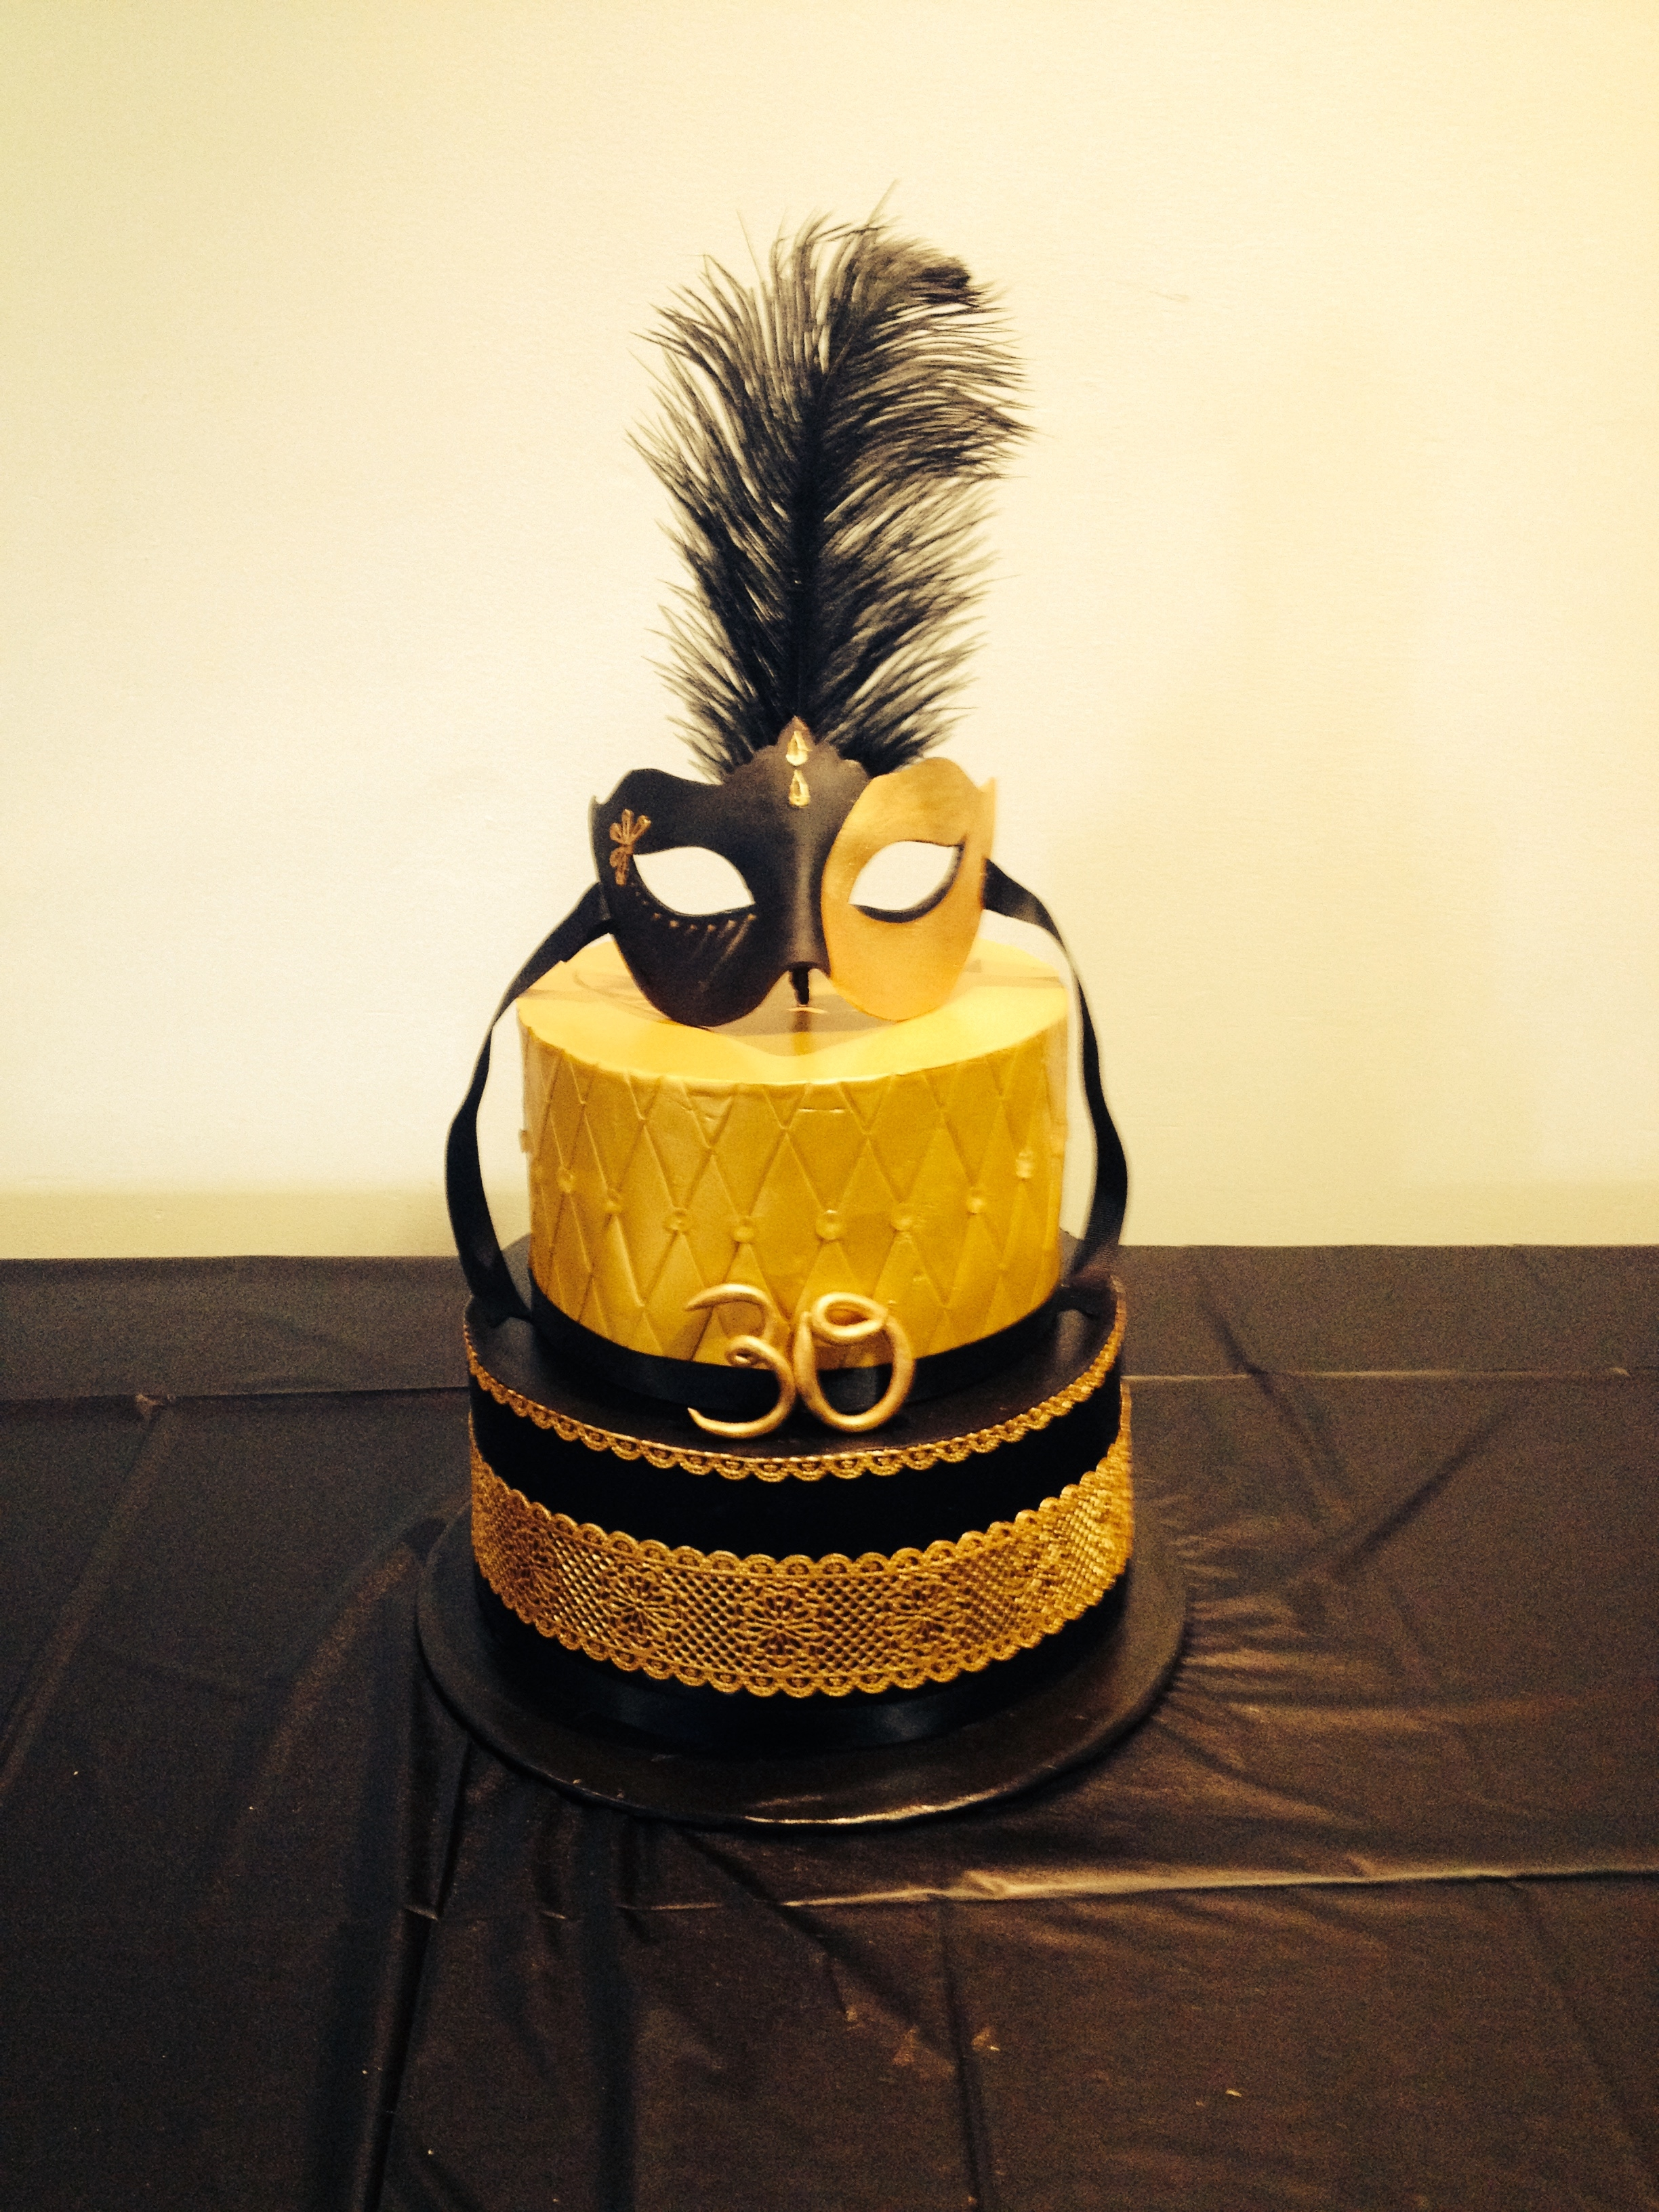 Black And Gold 30Th Masquarade Birthday Cake Made for a black and gold masquerade birthday cake.